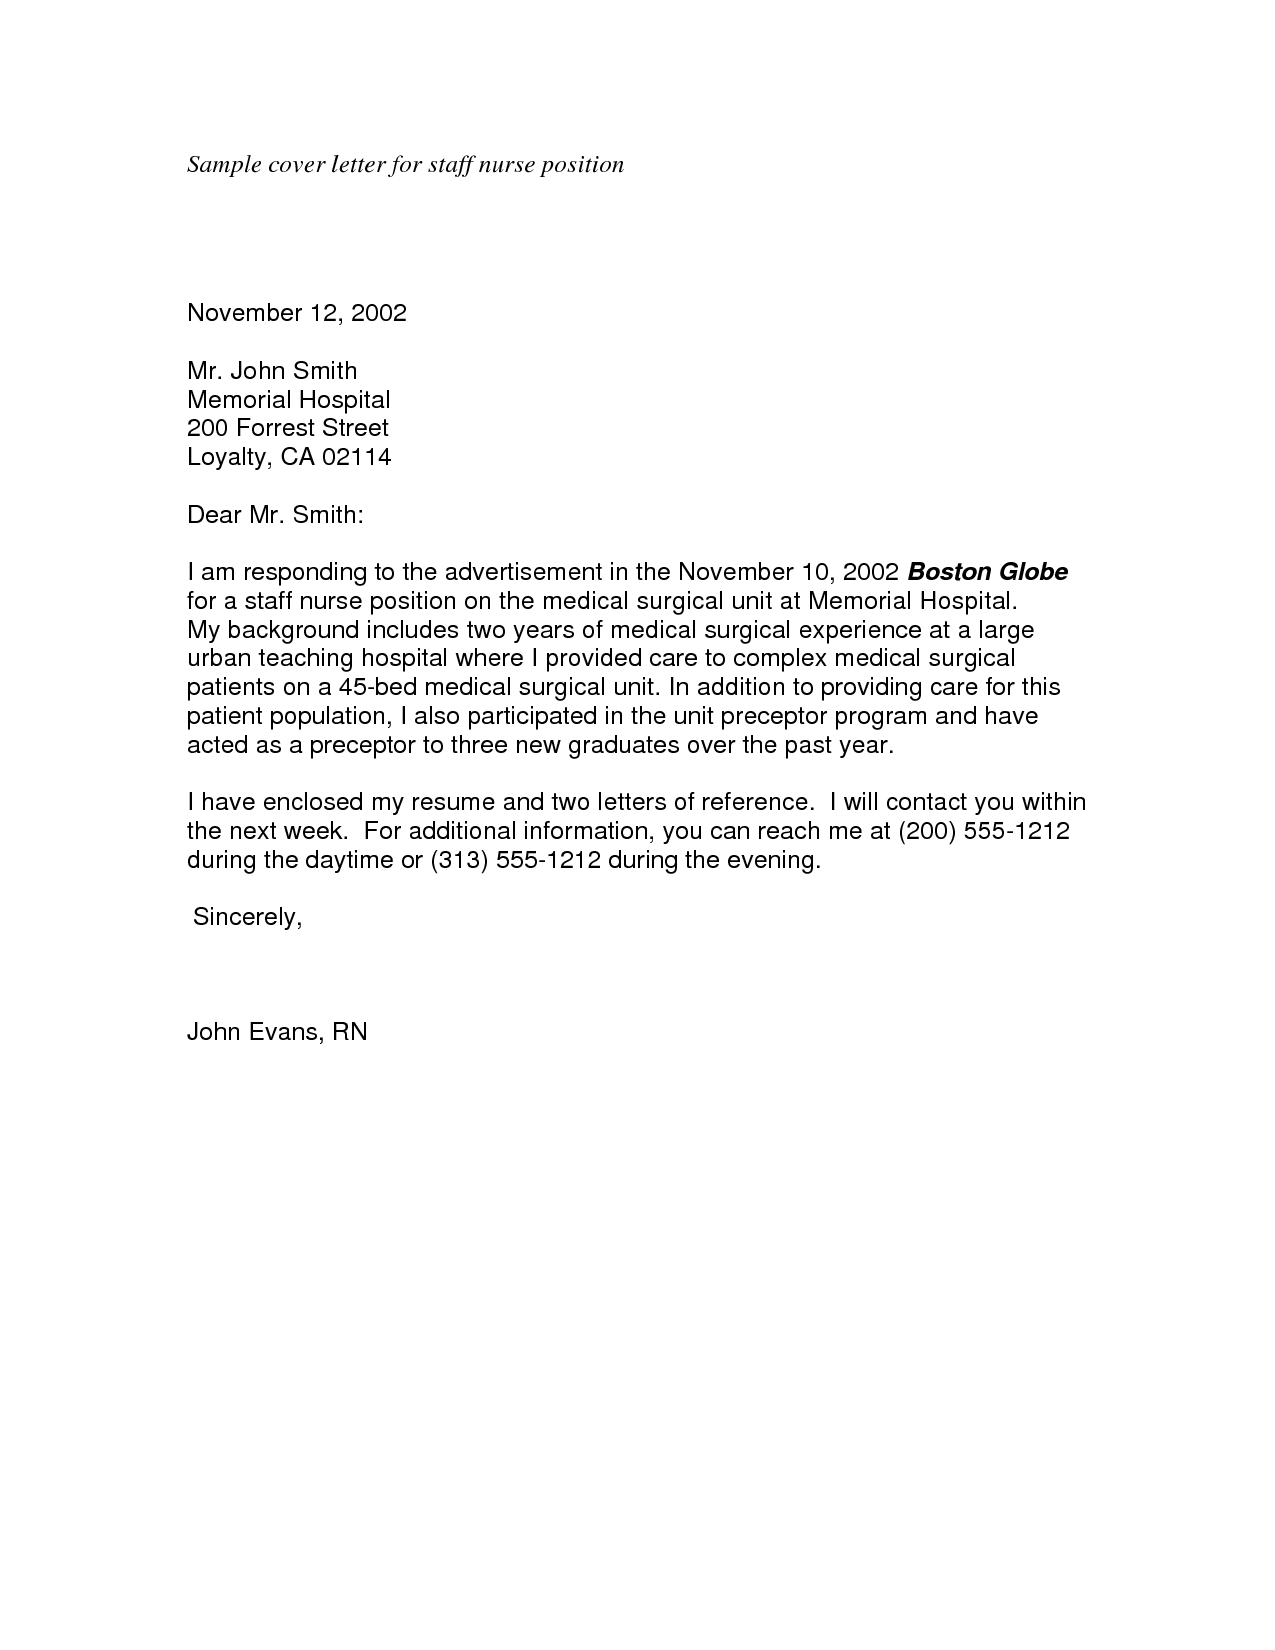 Cover Letter For Application 30 Example Of A Good Cover Letter For A Job  Cover Letters  Resume .